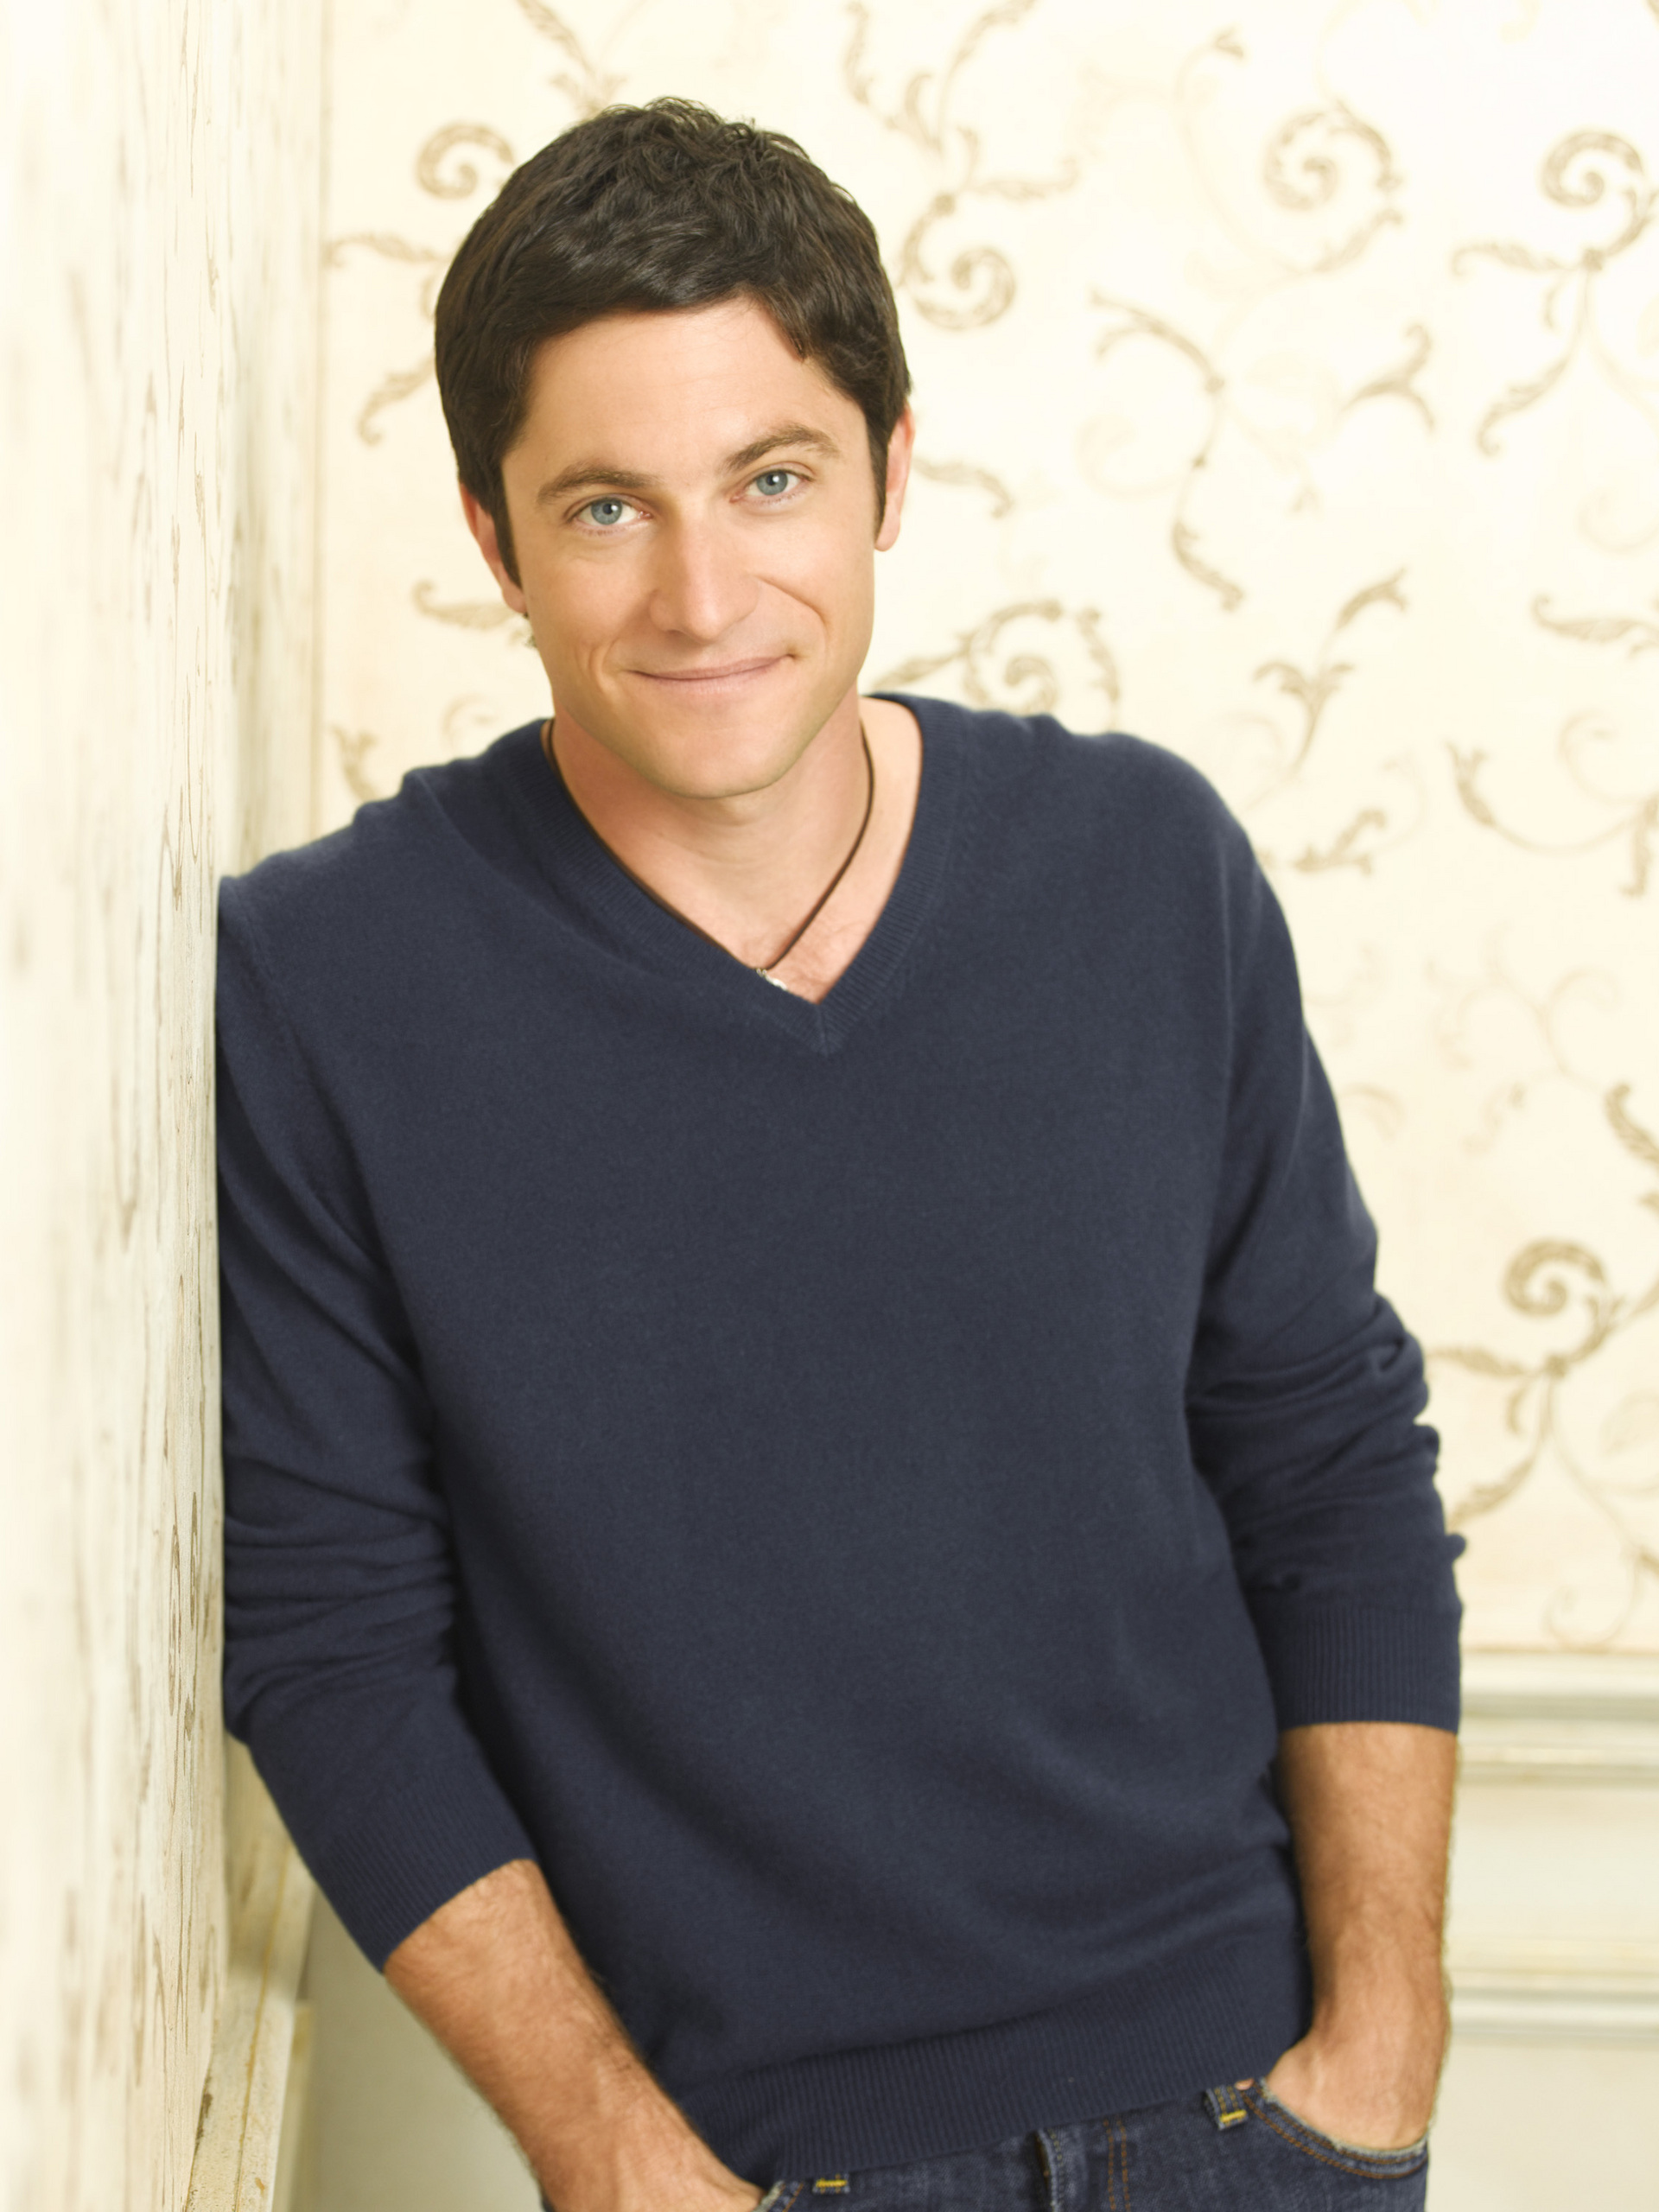 david conrad castledavid conrad 2016, david conrad leather jacket, david conrad csi miami, david conrad castle, david conrad jacket, david conrad instagram, david conrad married to nina garcia, david conrad wife, david conrad privat, david conrad, david conrad 2015, david conrad actor, david conrad and jennifer love hewitt, david conrad ghost whisperer, david conrad wiki, david conrad wikipedia, david conrad vida personal, david conrad married 2012, david conrad et sa femme, david conrad leaving ghost whisperer